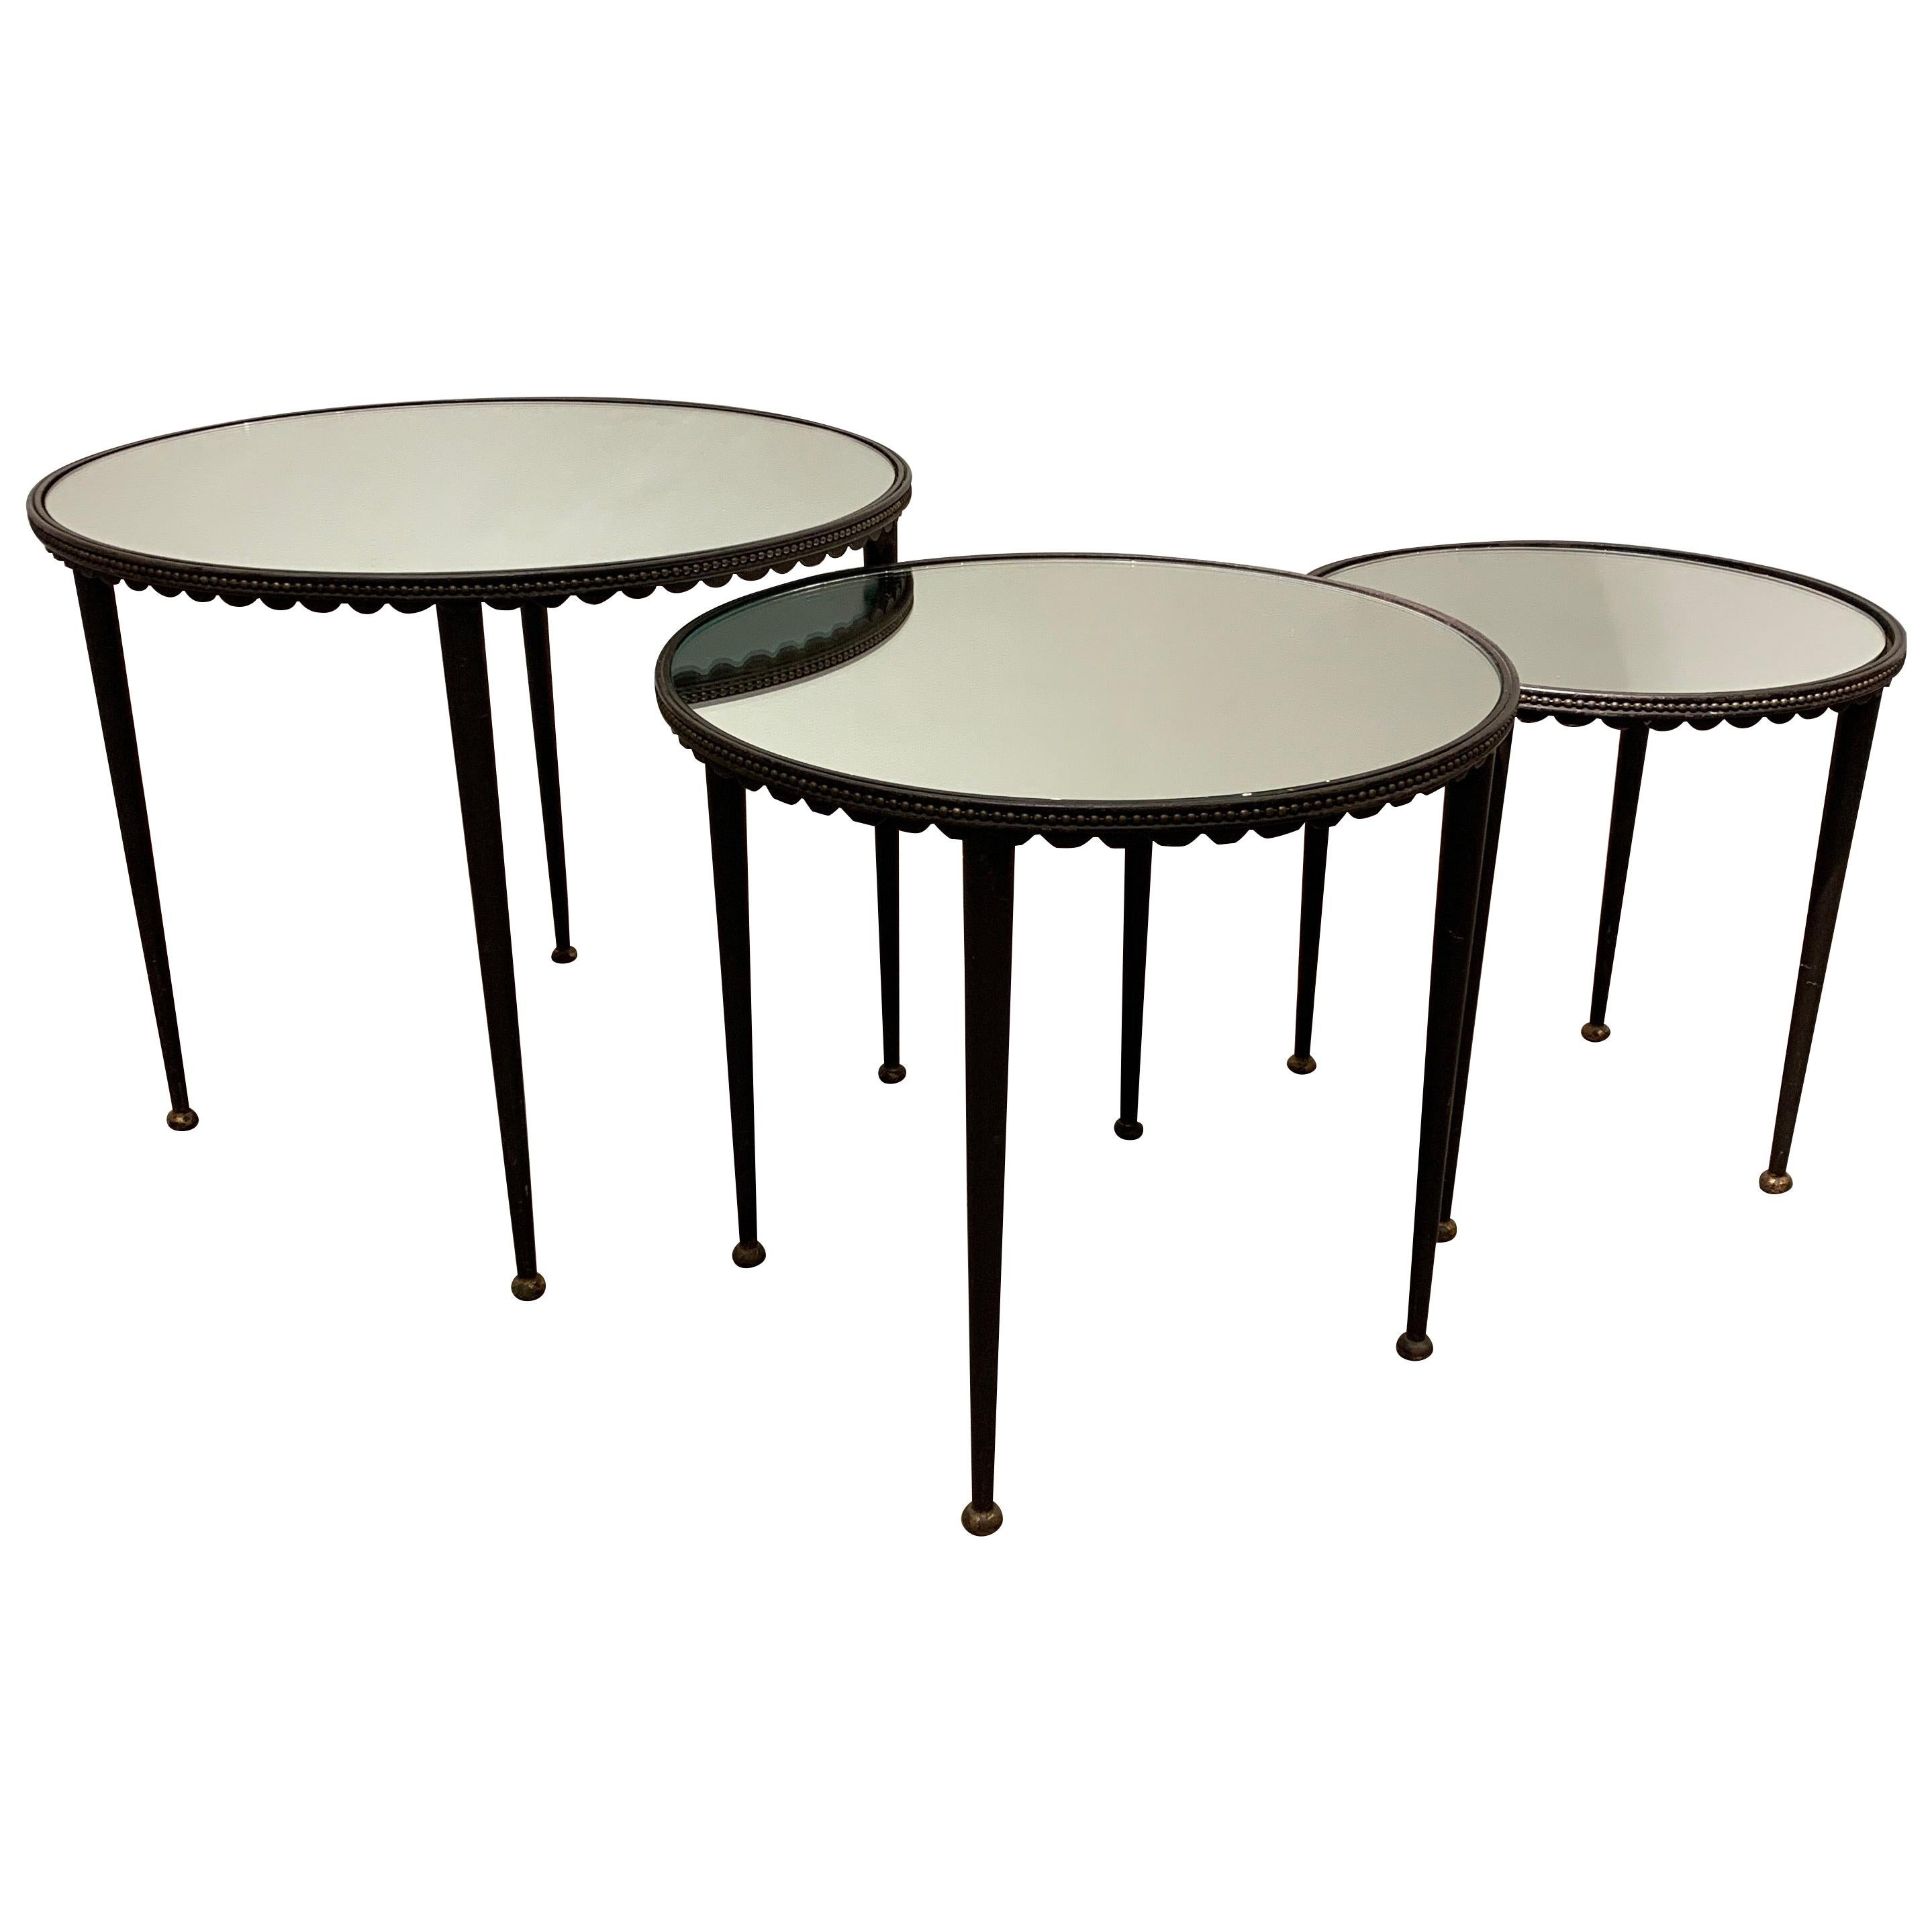 Set of Nesting Tables Attributed to Maison Jansen, 1960s